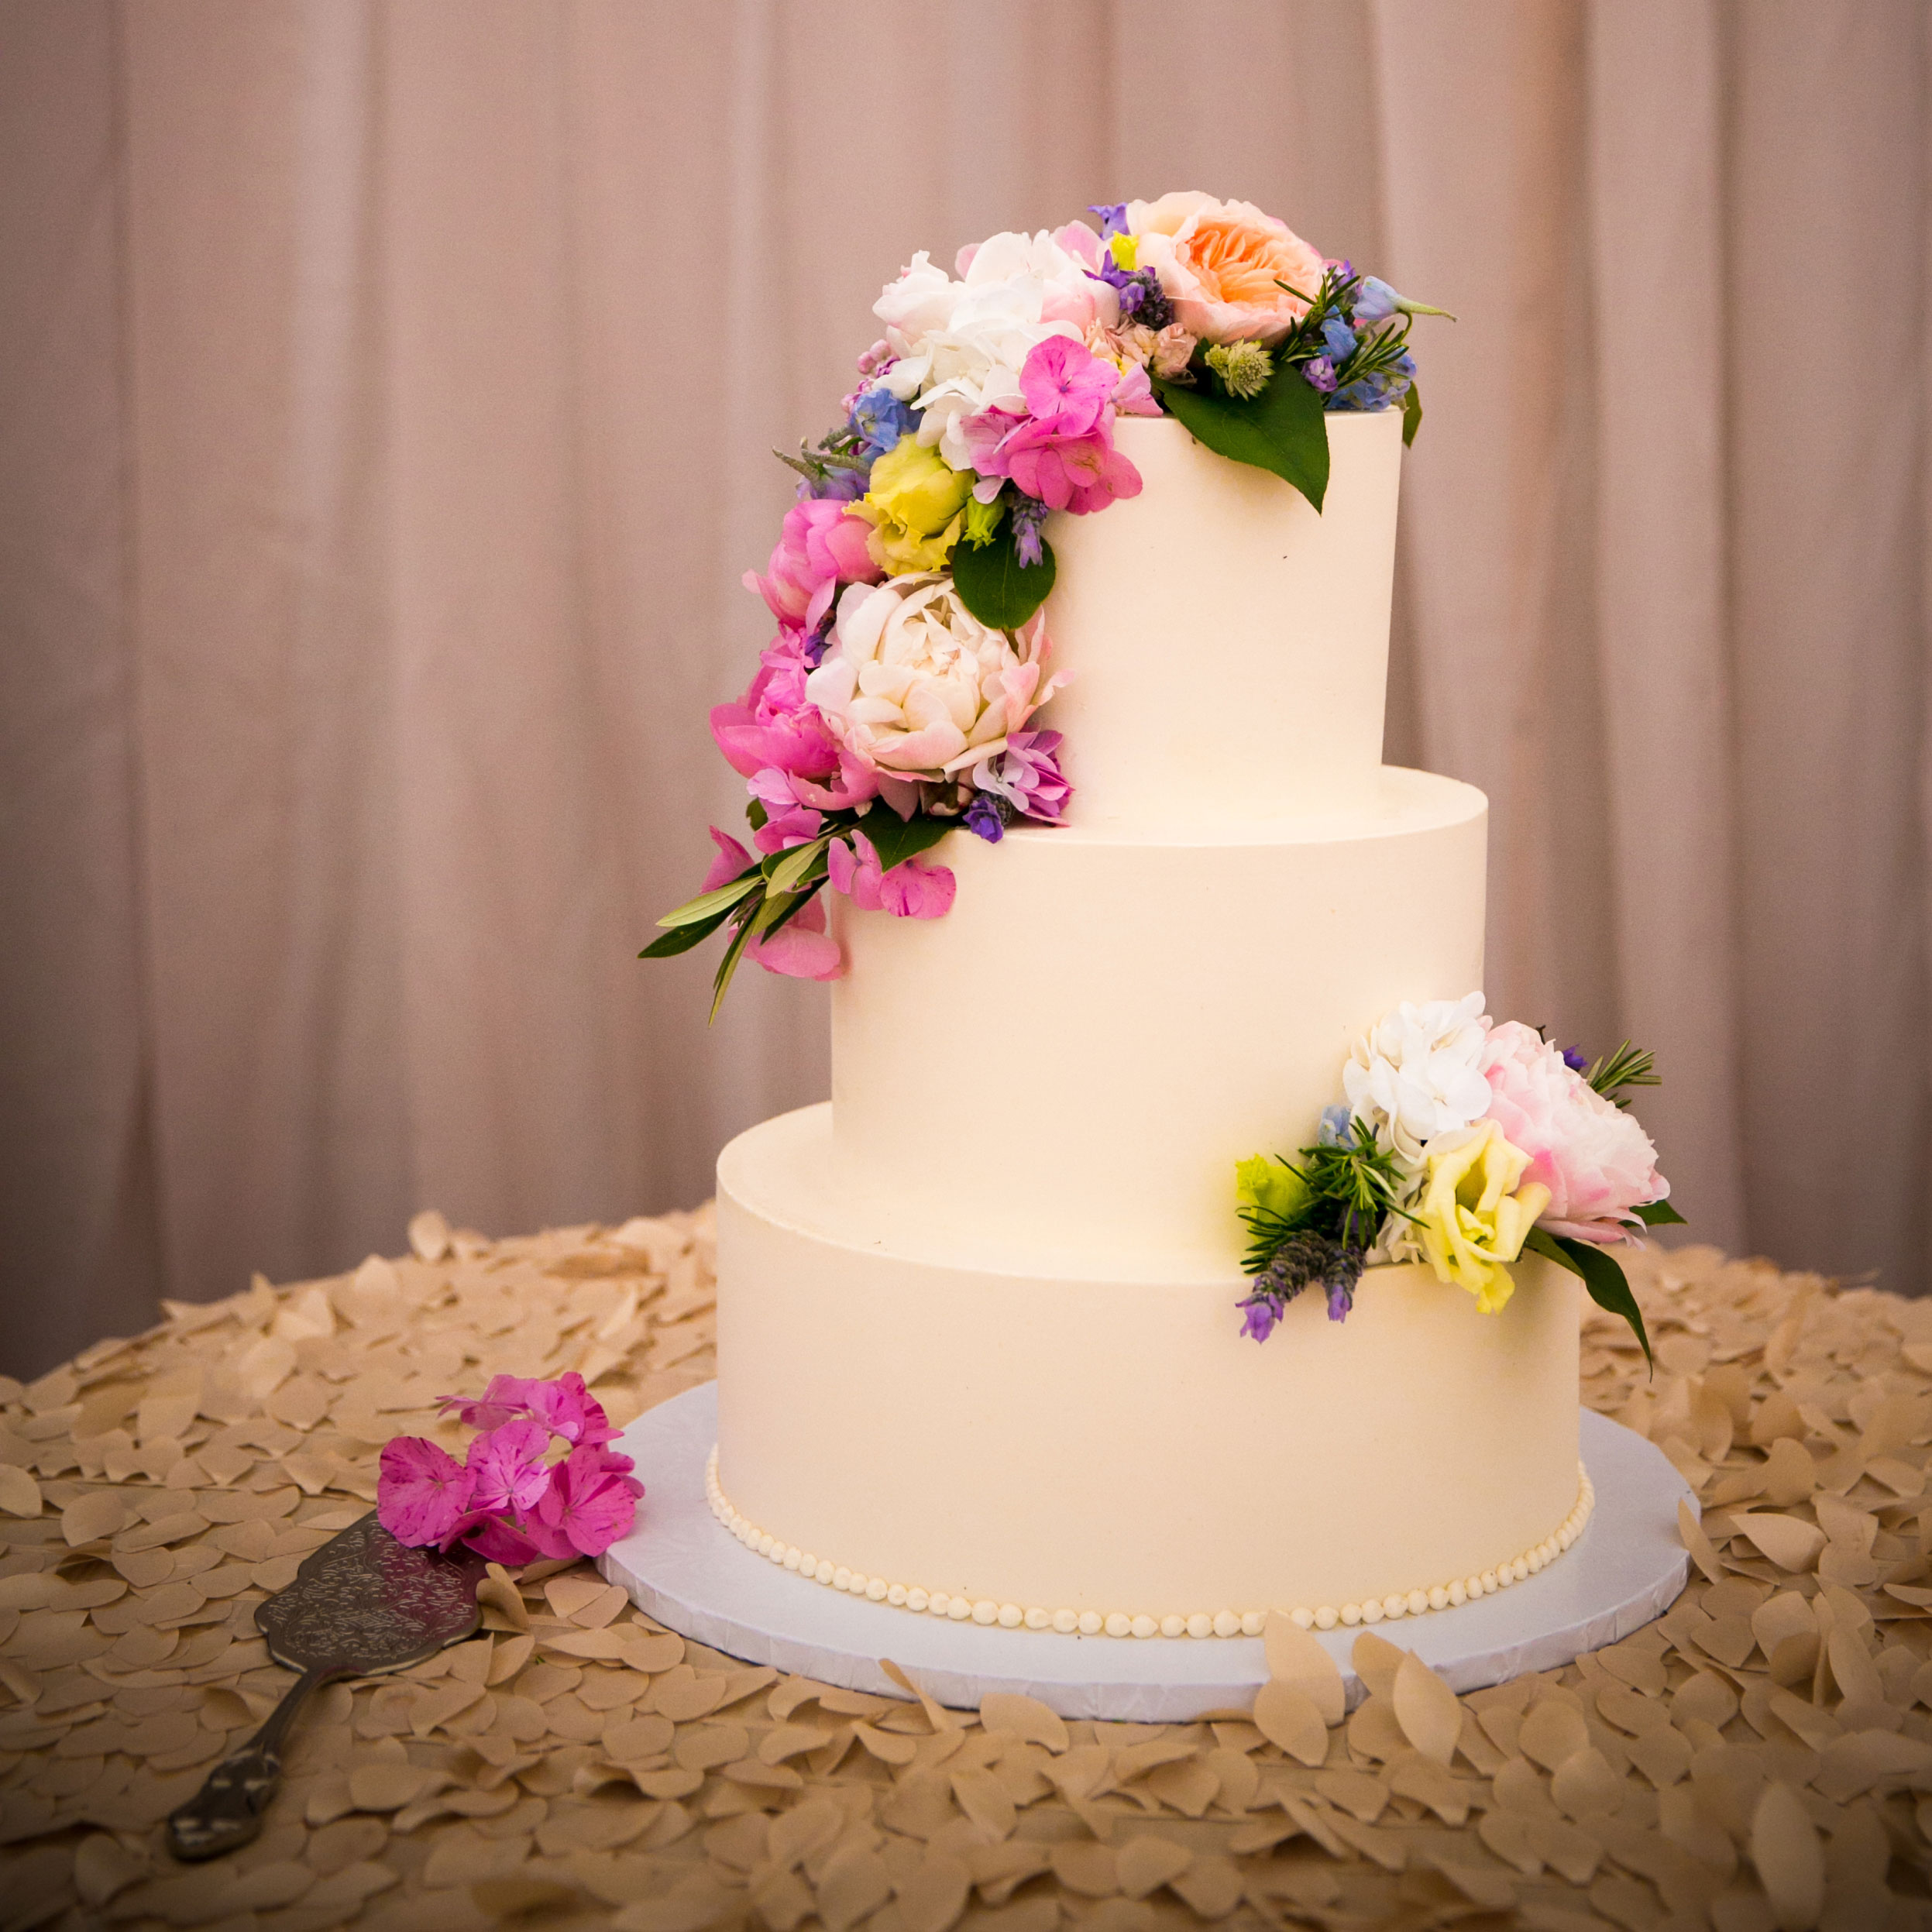 three-tier wedding cake with smooth frosting bright pink, blue, yellow fresh flowers